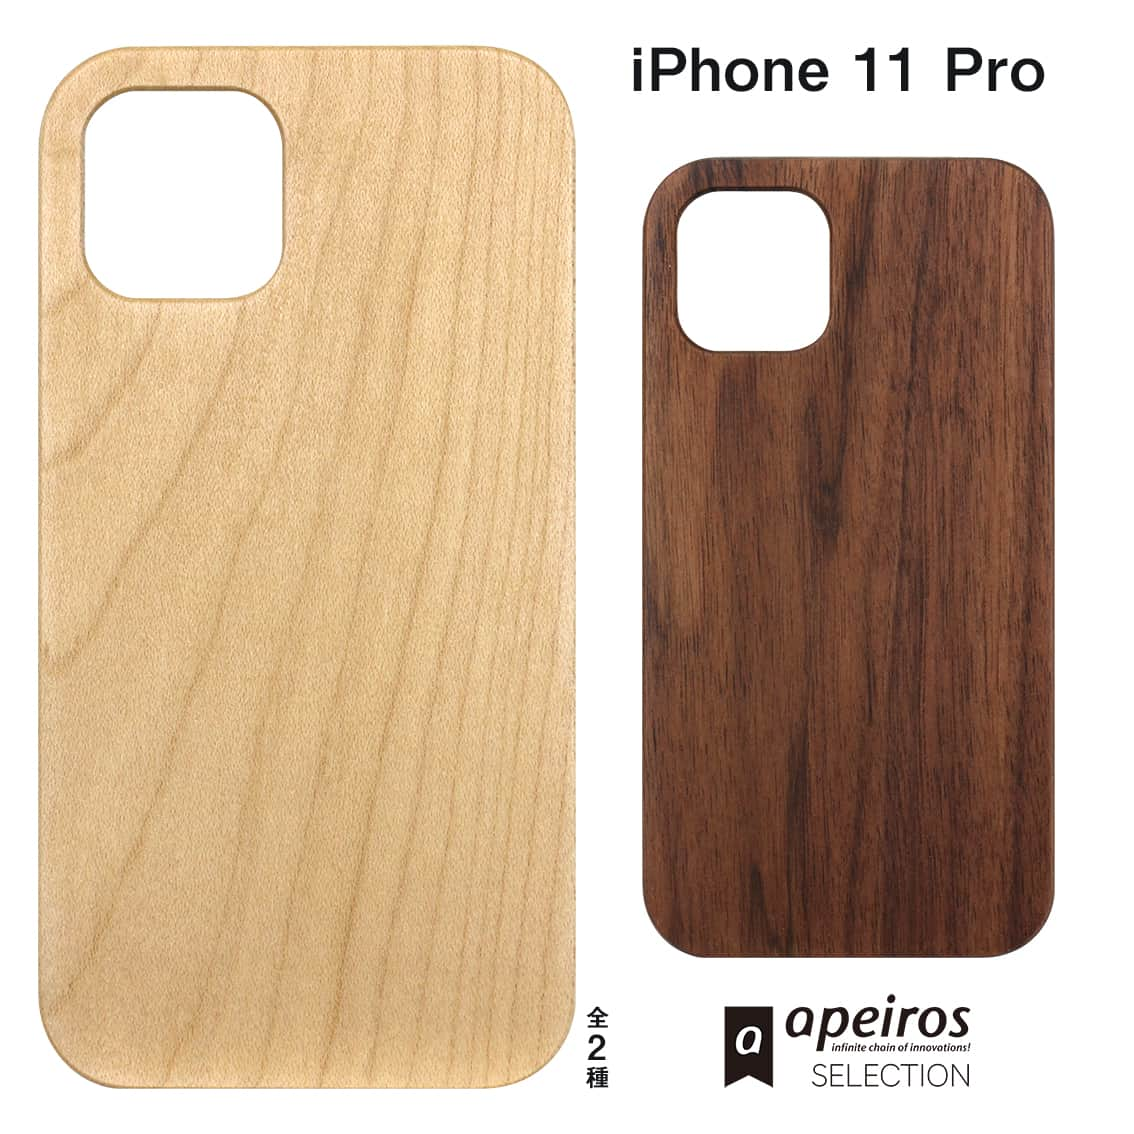 iPhone 11 Pro 背面木製ケース[apeiros SELECTION]